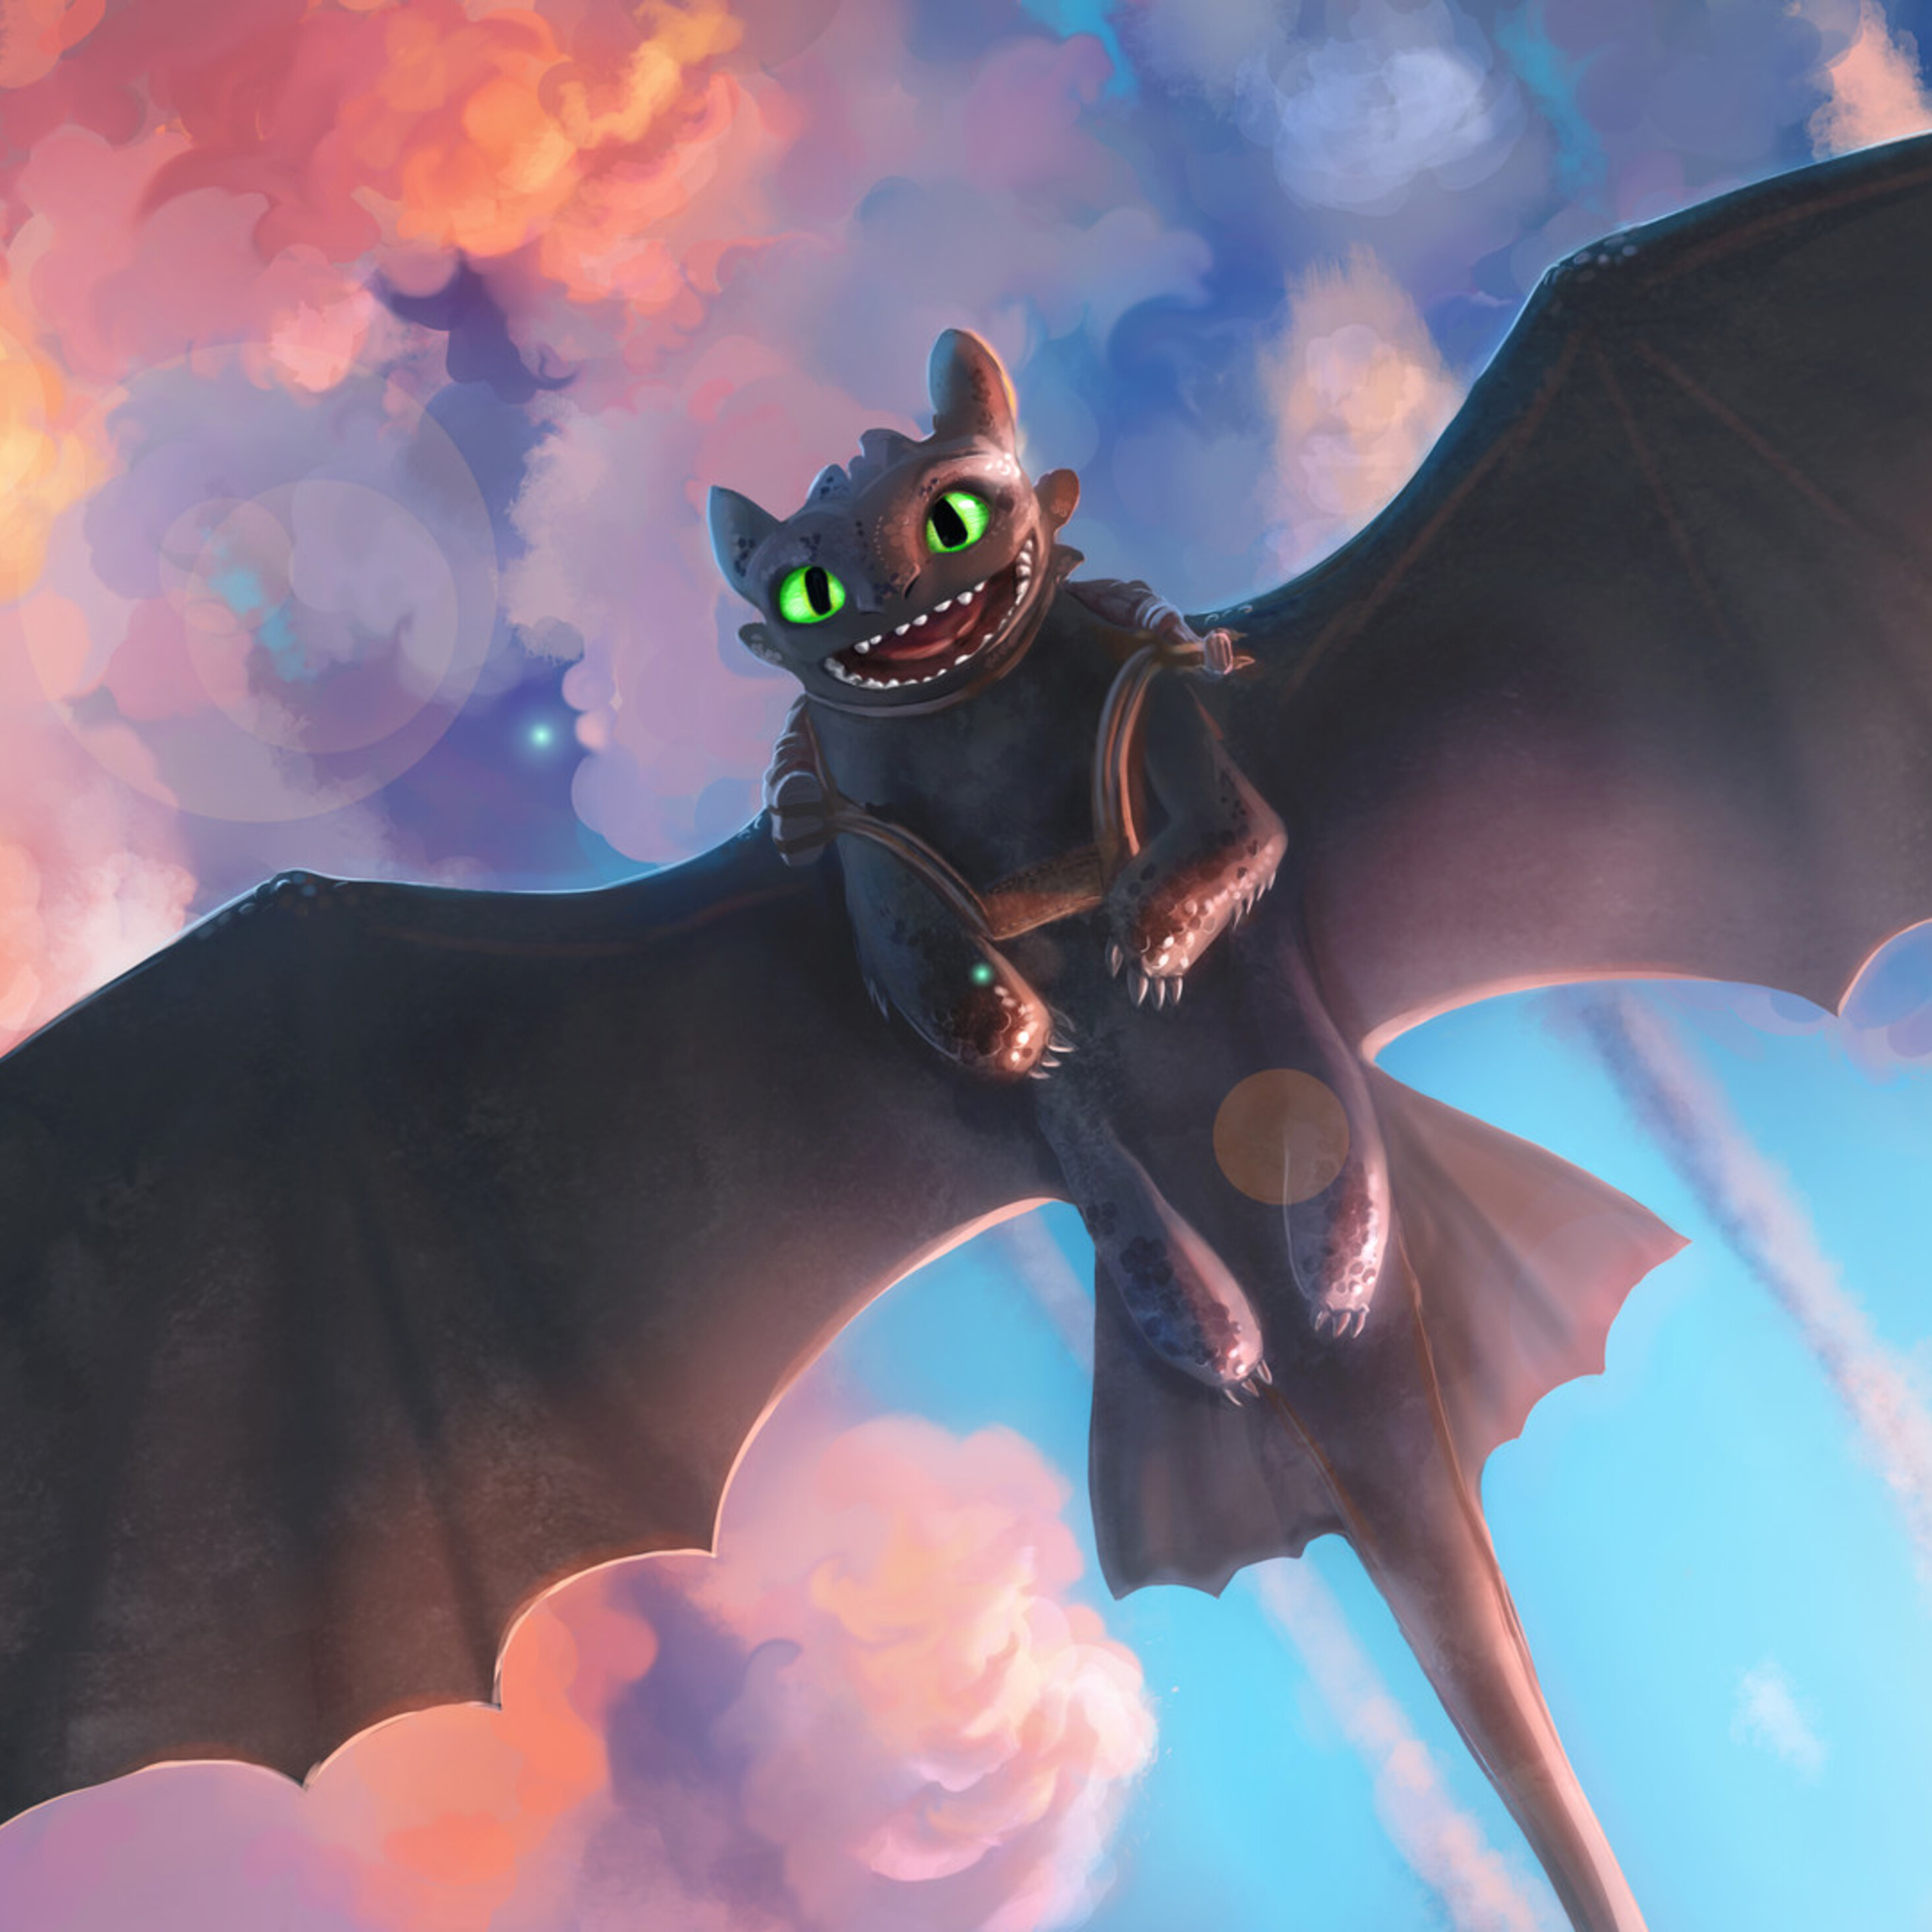 Toothless Wallpaper: 2932x2932 Toothless Artwork Ipad Pro Retina Display HD 4k